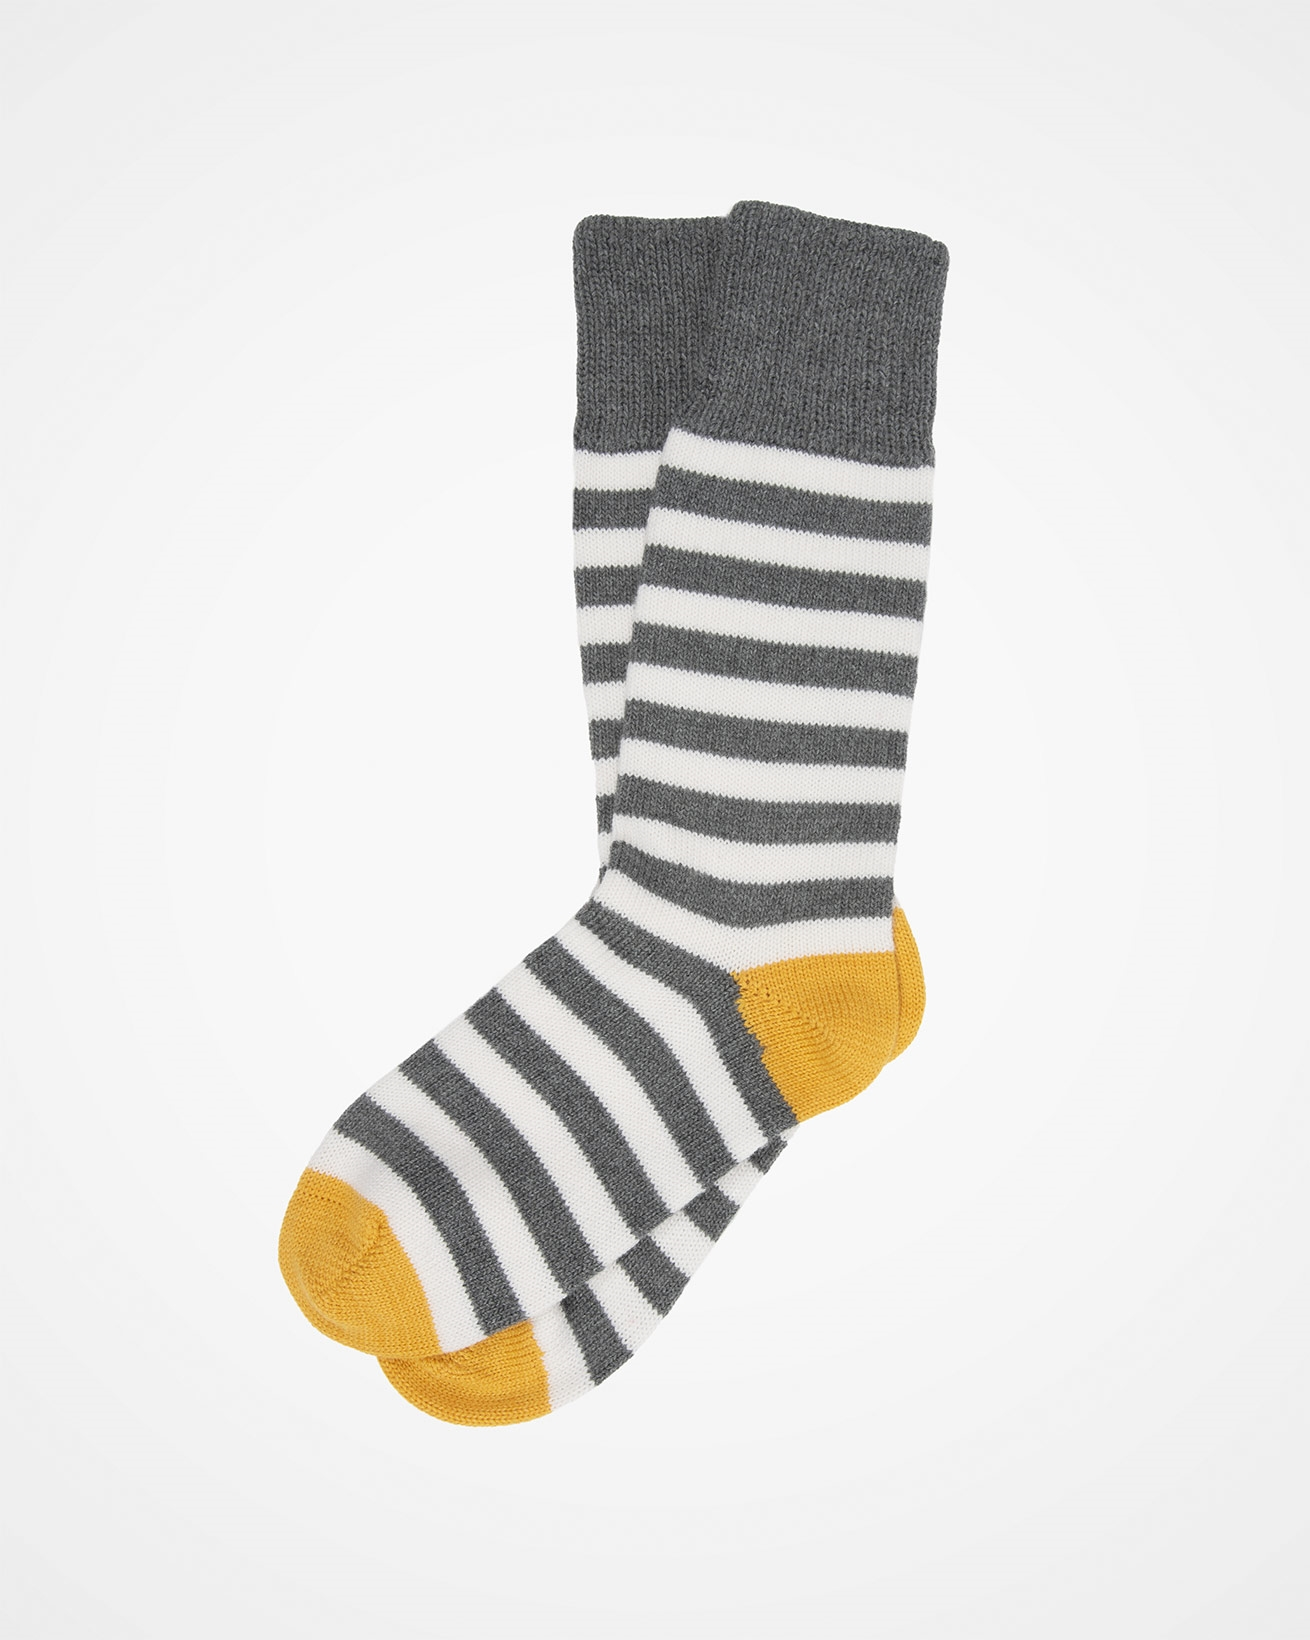 7762_ladies-merino-cotton-stripe-socks_derby-grey_flat.jpg